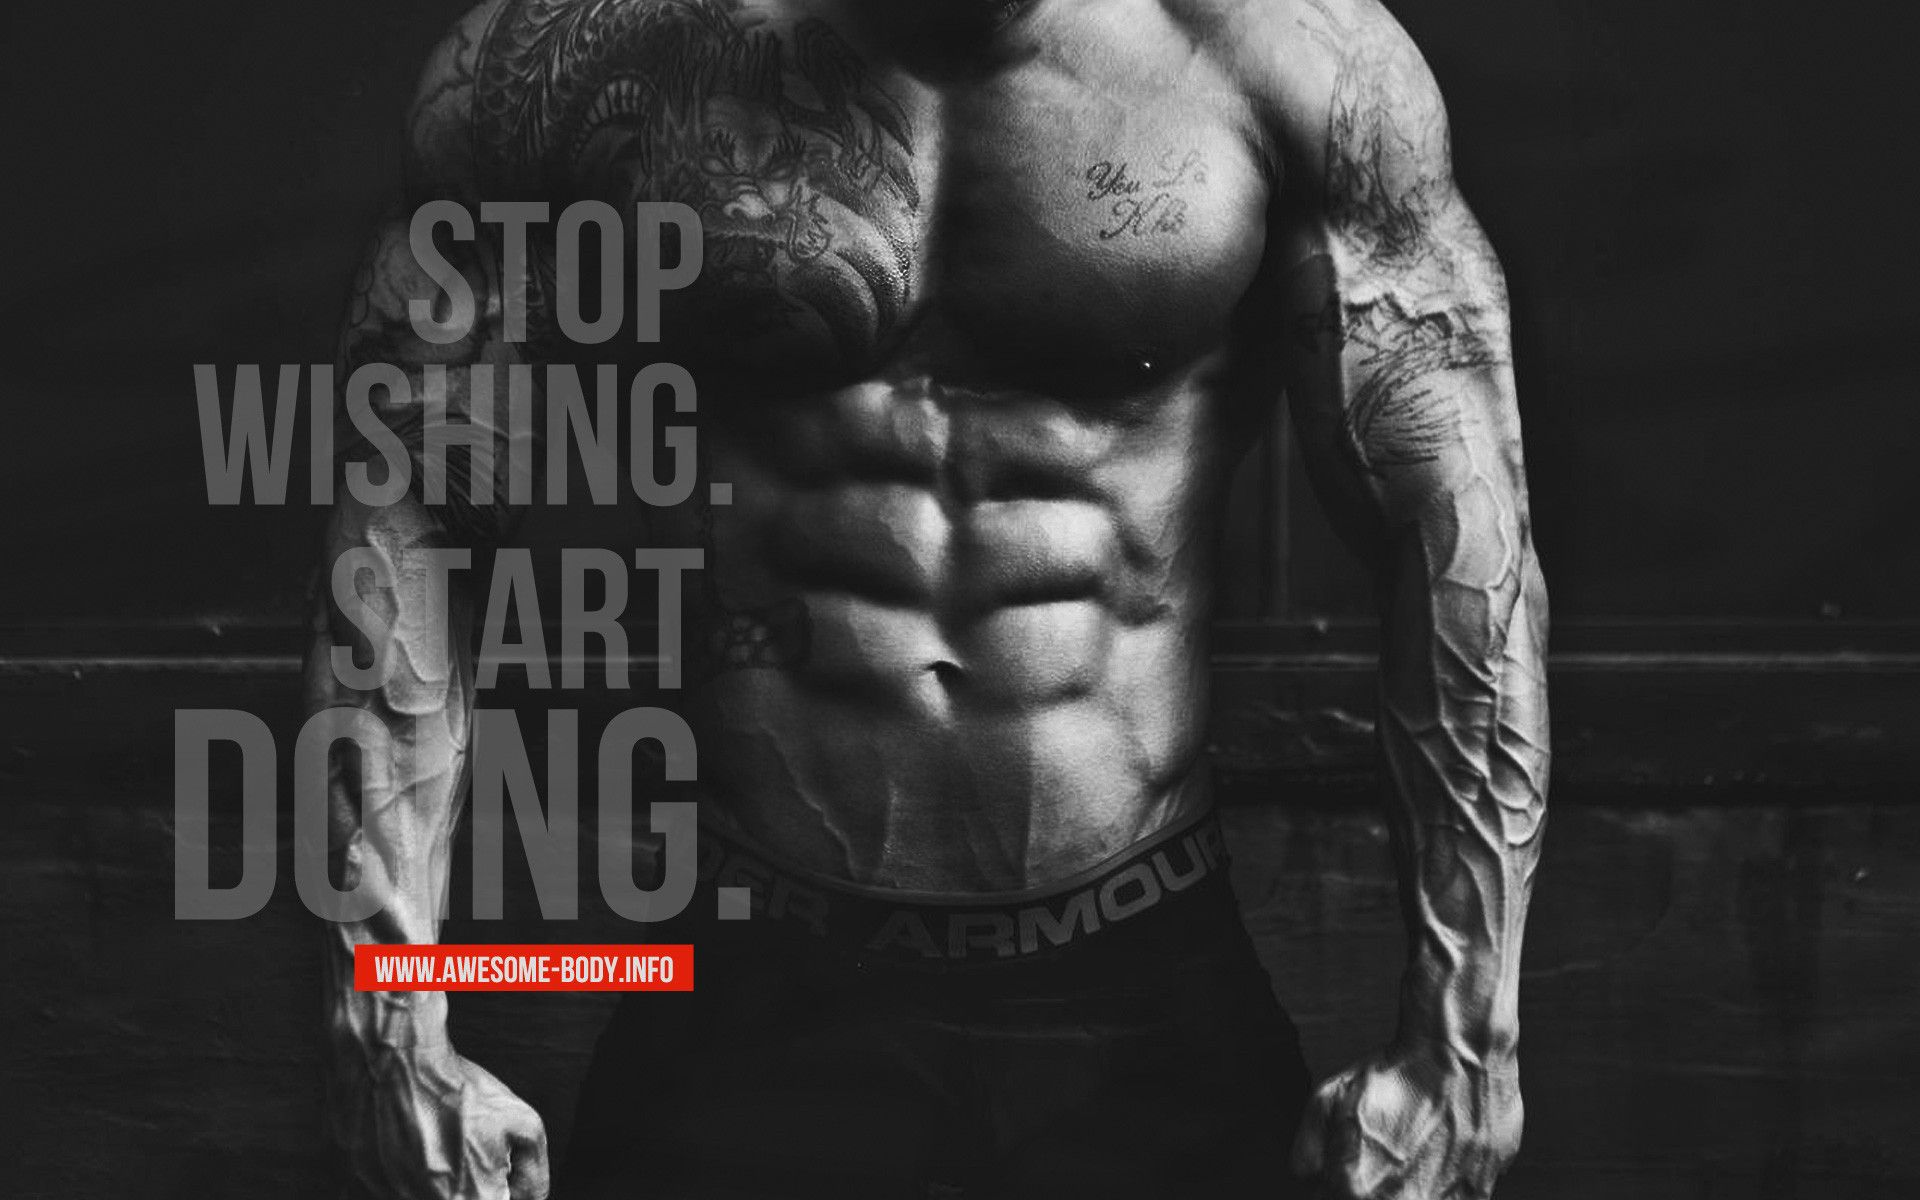 Workout Wallpapers Group with 39 items